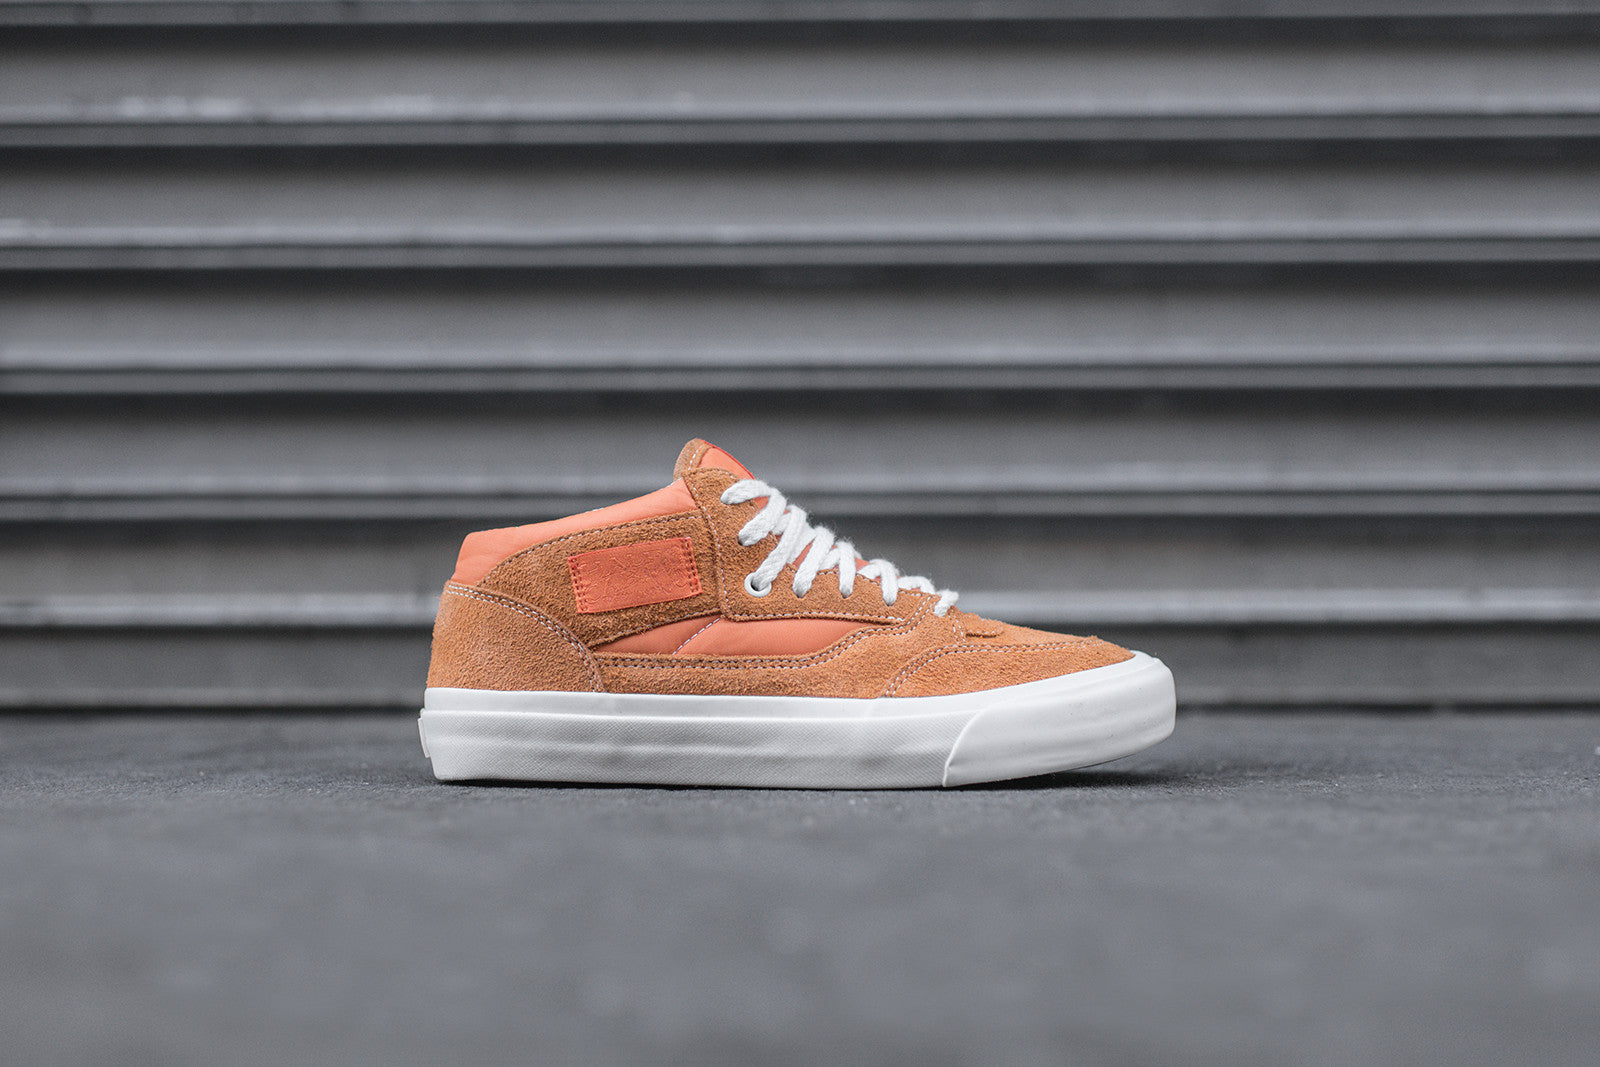 Vans x Our Legacy Half Cab Pro 92 - Orange